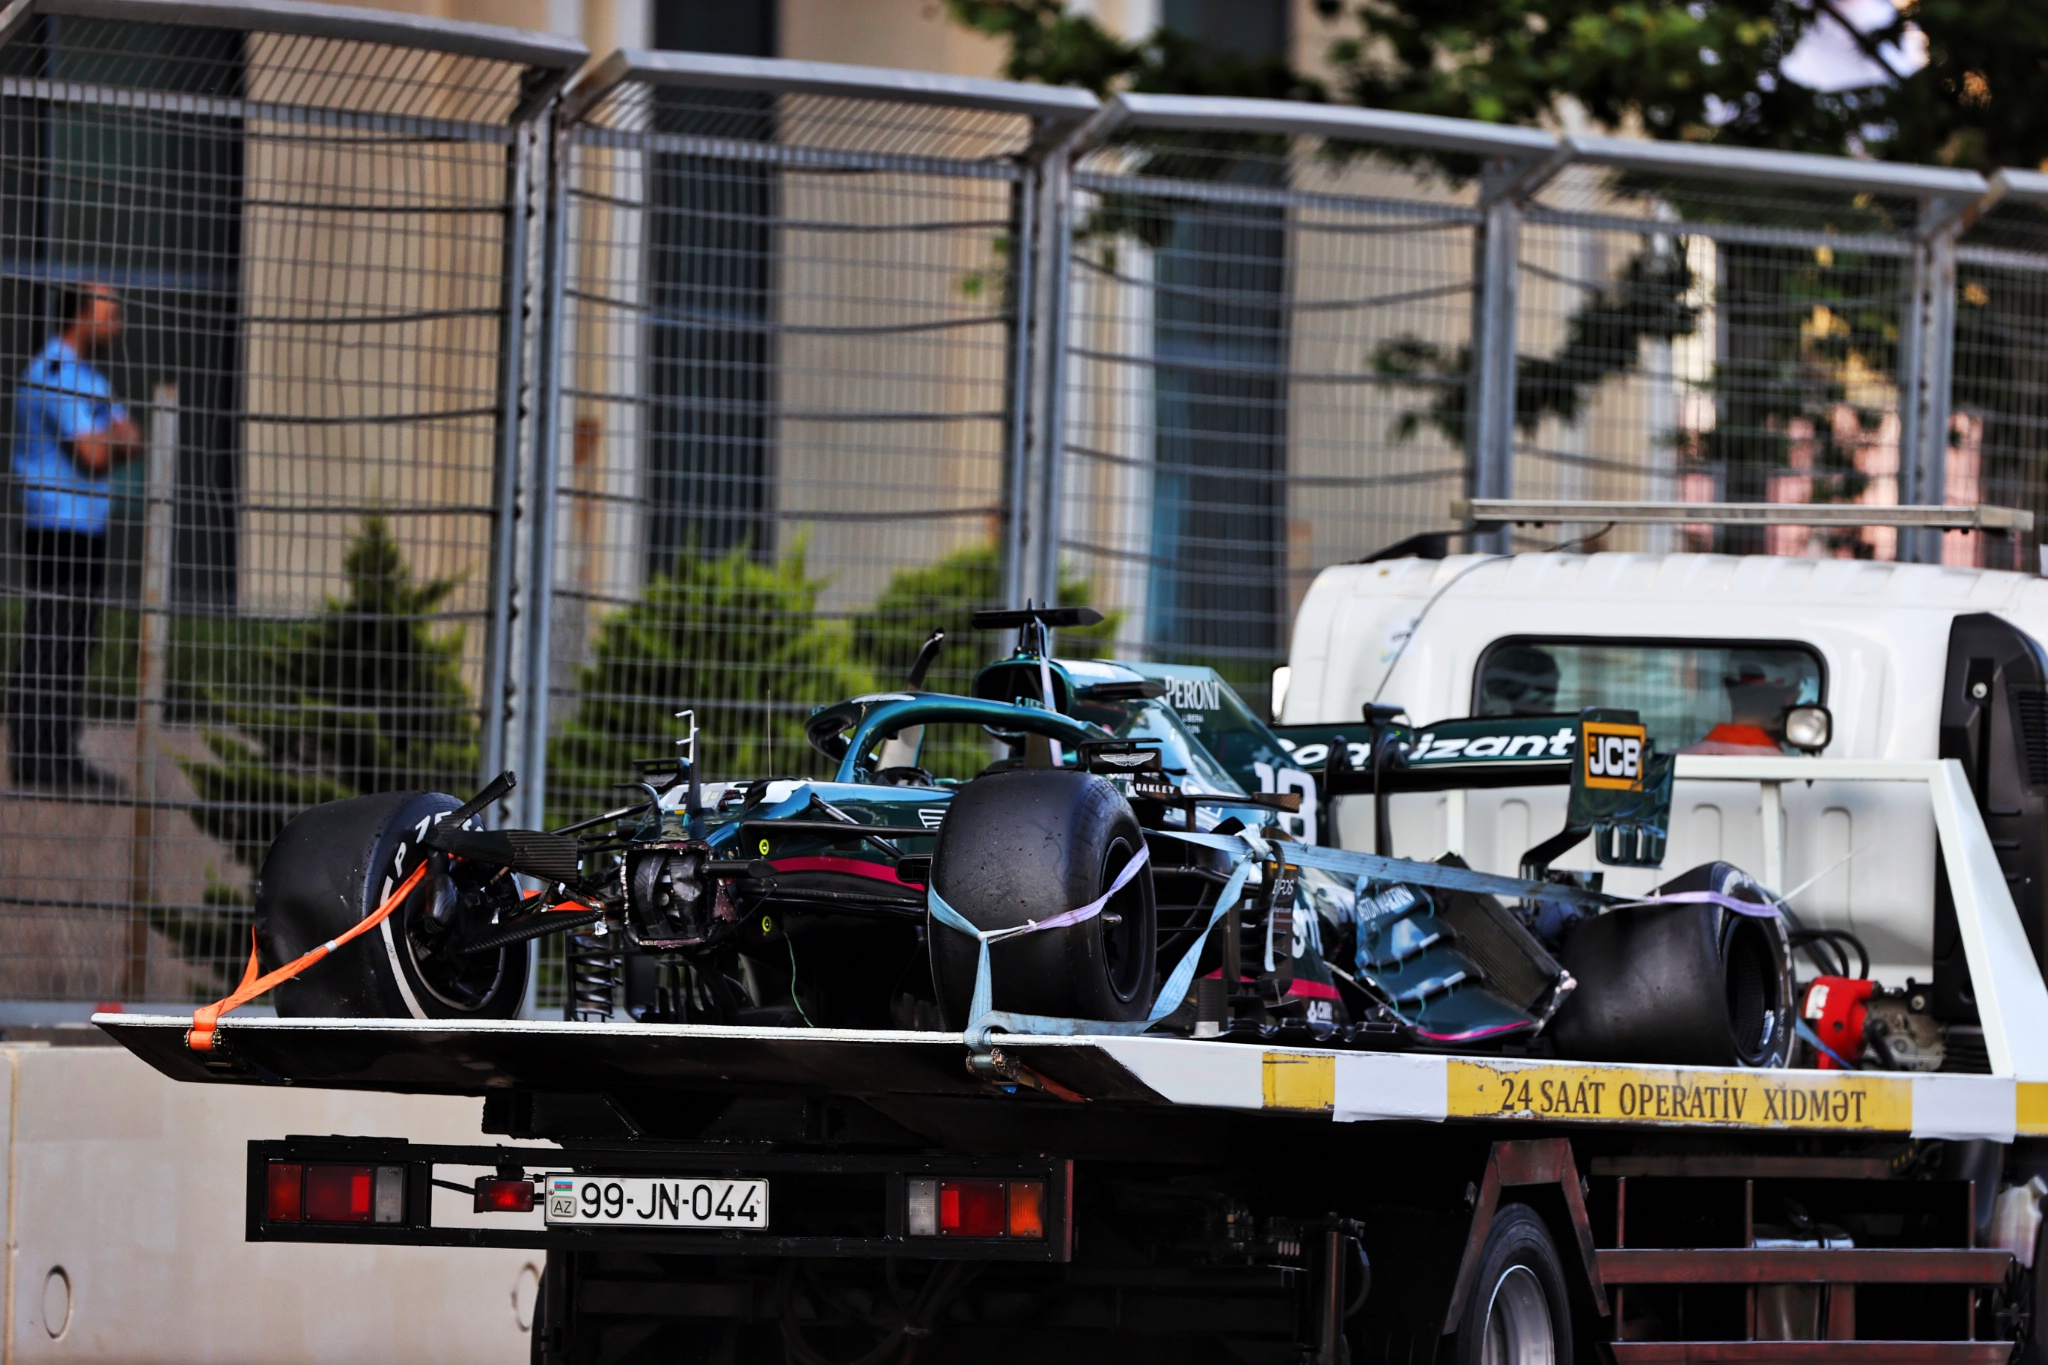 The Aston Martin F1 Team AMR21 of Lance Stroll (CDN) Aston Martin F1 Team is recovered back to the pits on the back of a truck after he crashed out of the race.